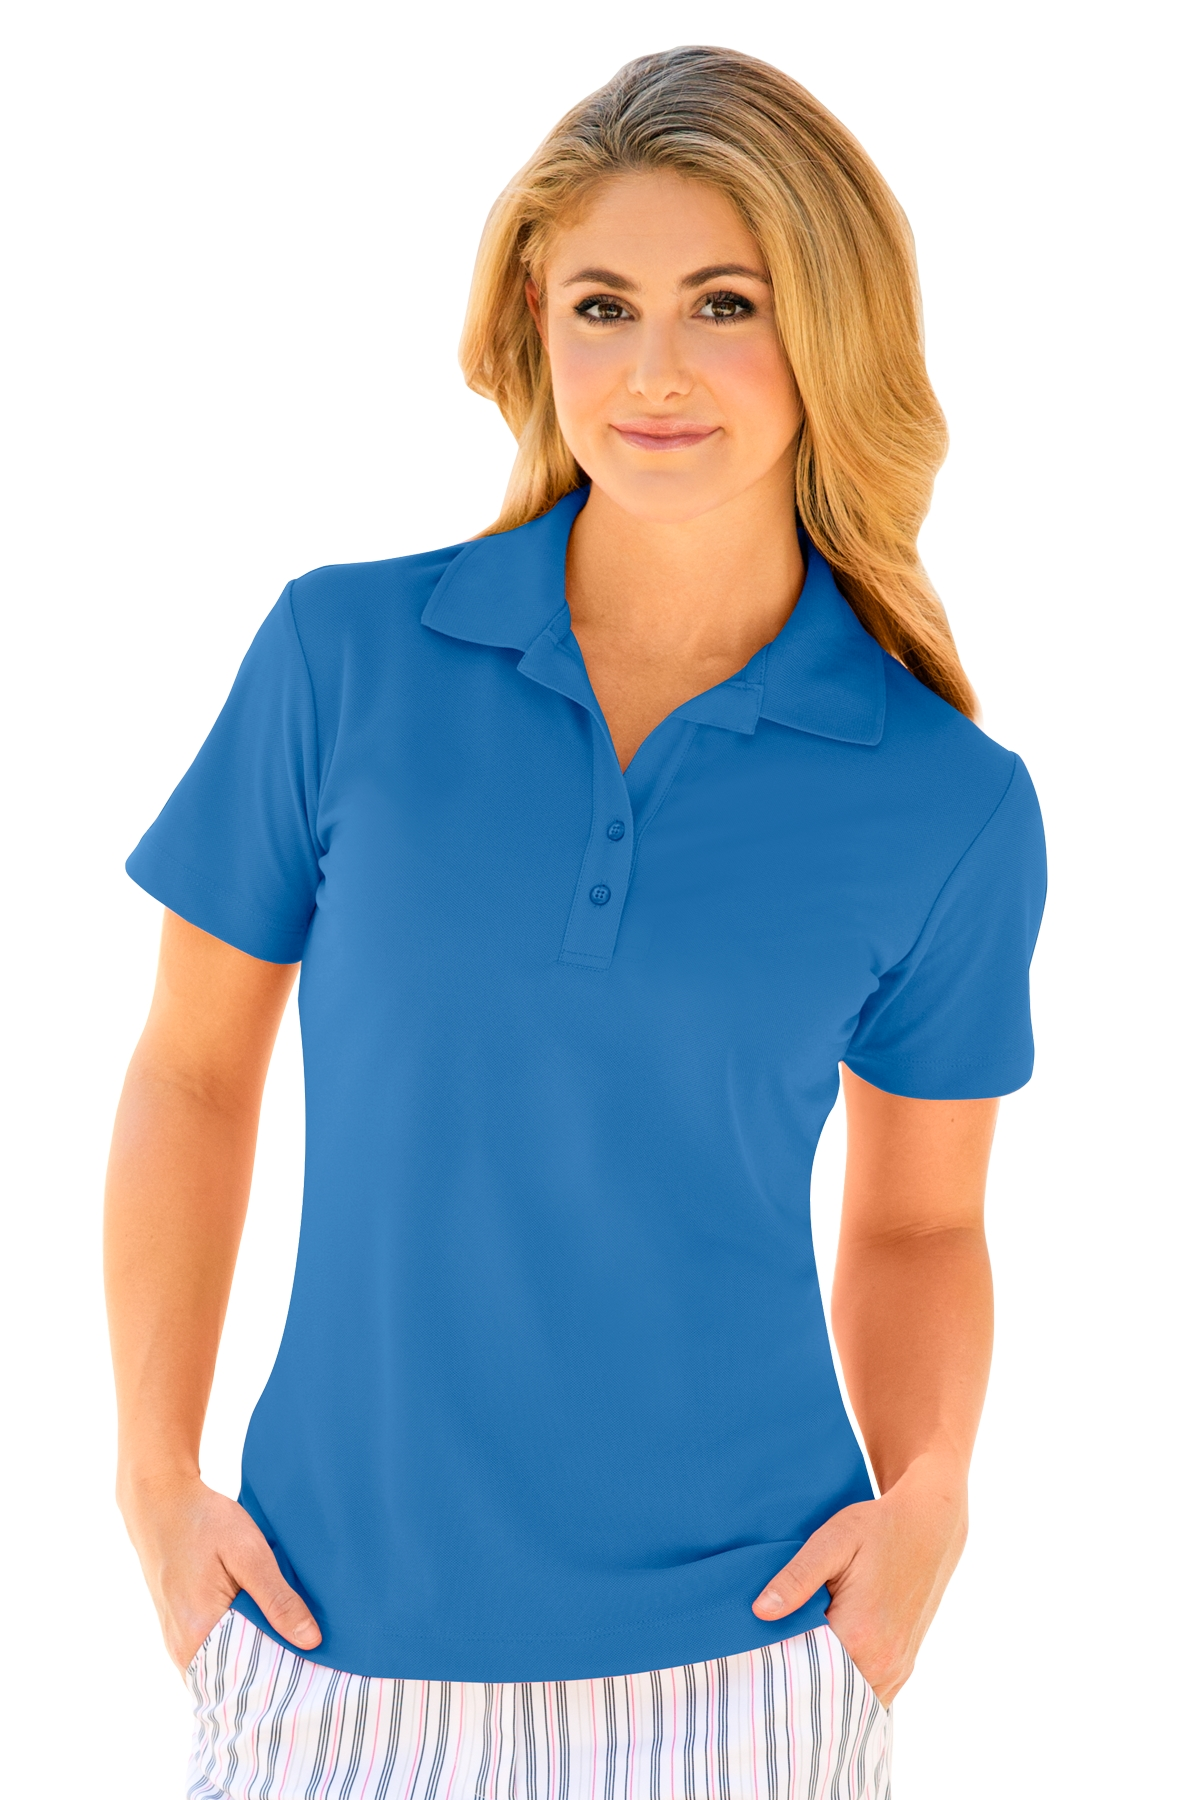 Greg Norman WNS3K445 - Women's Play Dry® Performance Mesh Polo